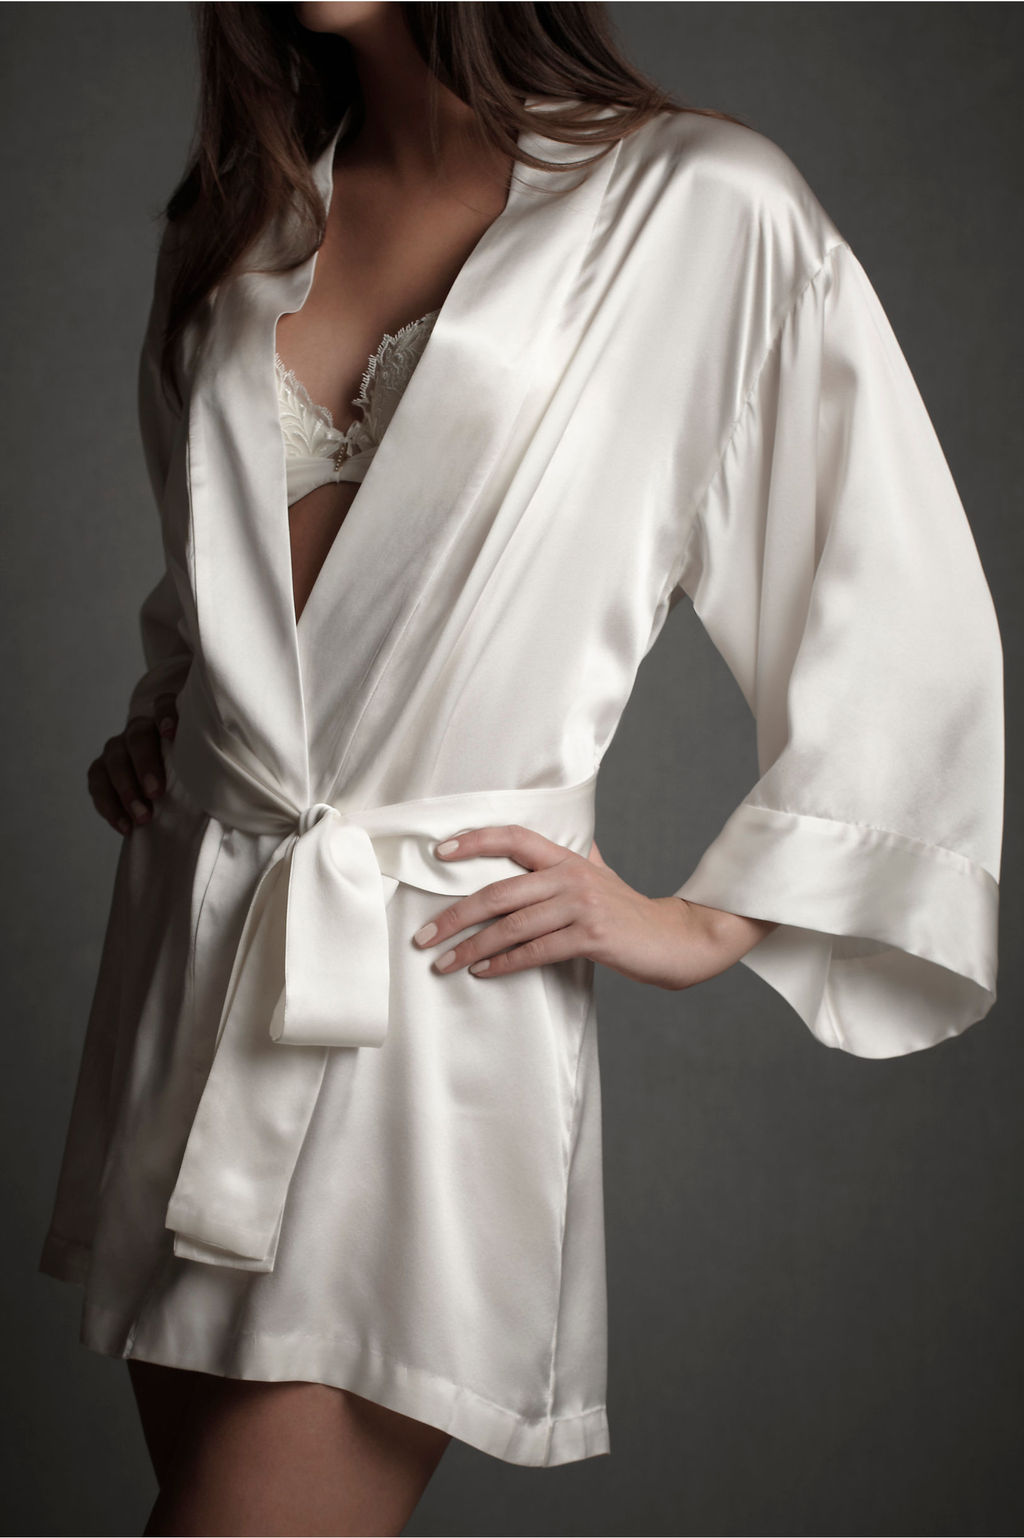 Gifts-for-the-bride-silk-robe-bhldn.full